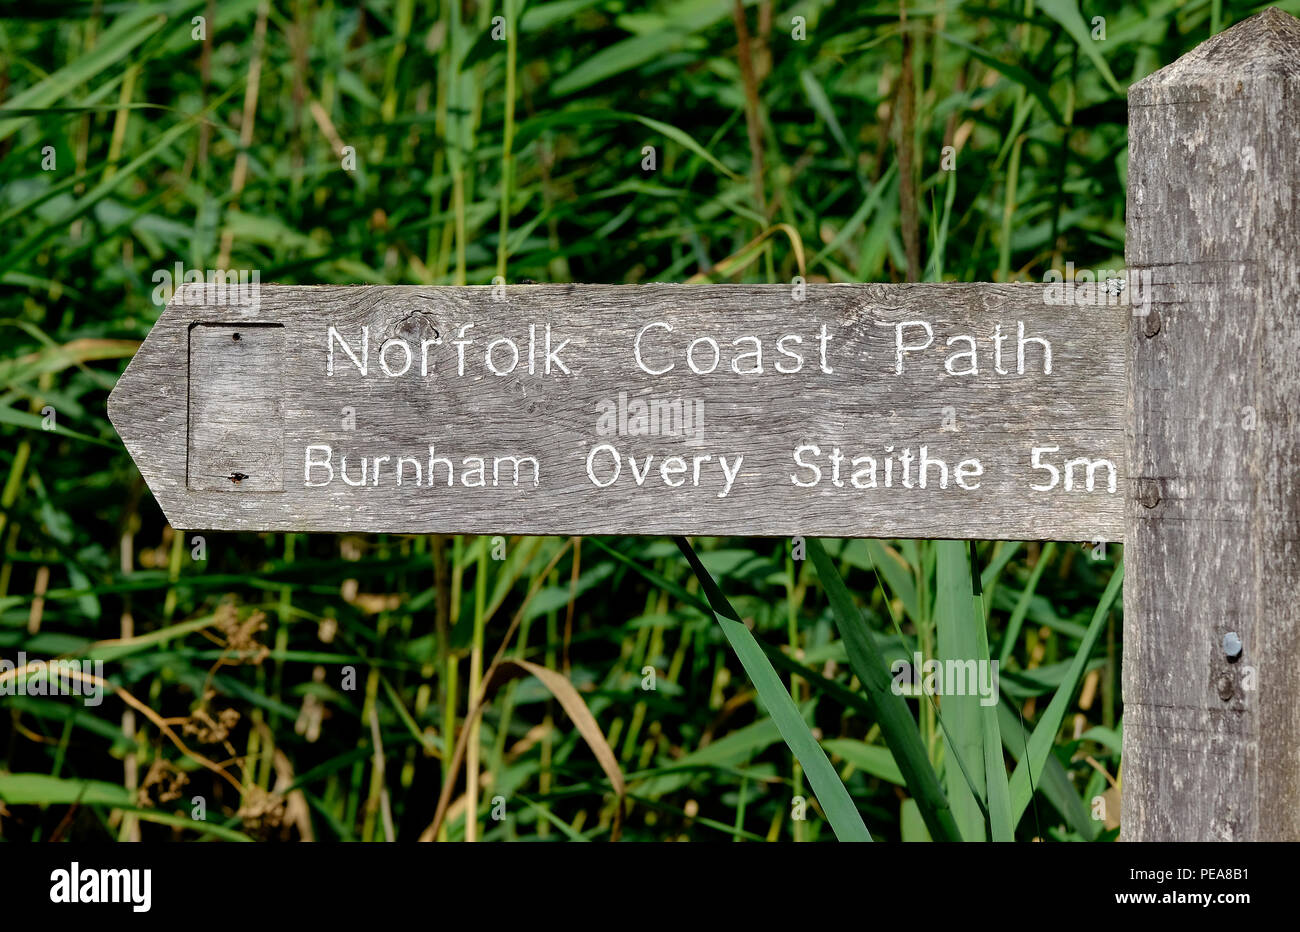 norfolk coast path sign at wells-next-the-sea, england - Stock Image